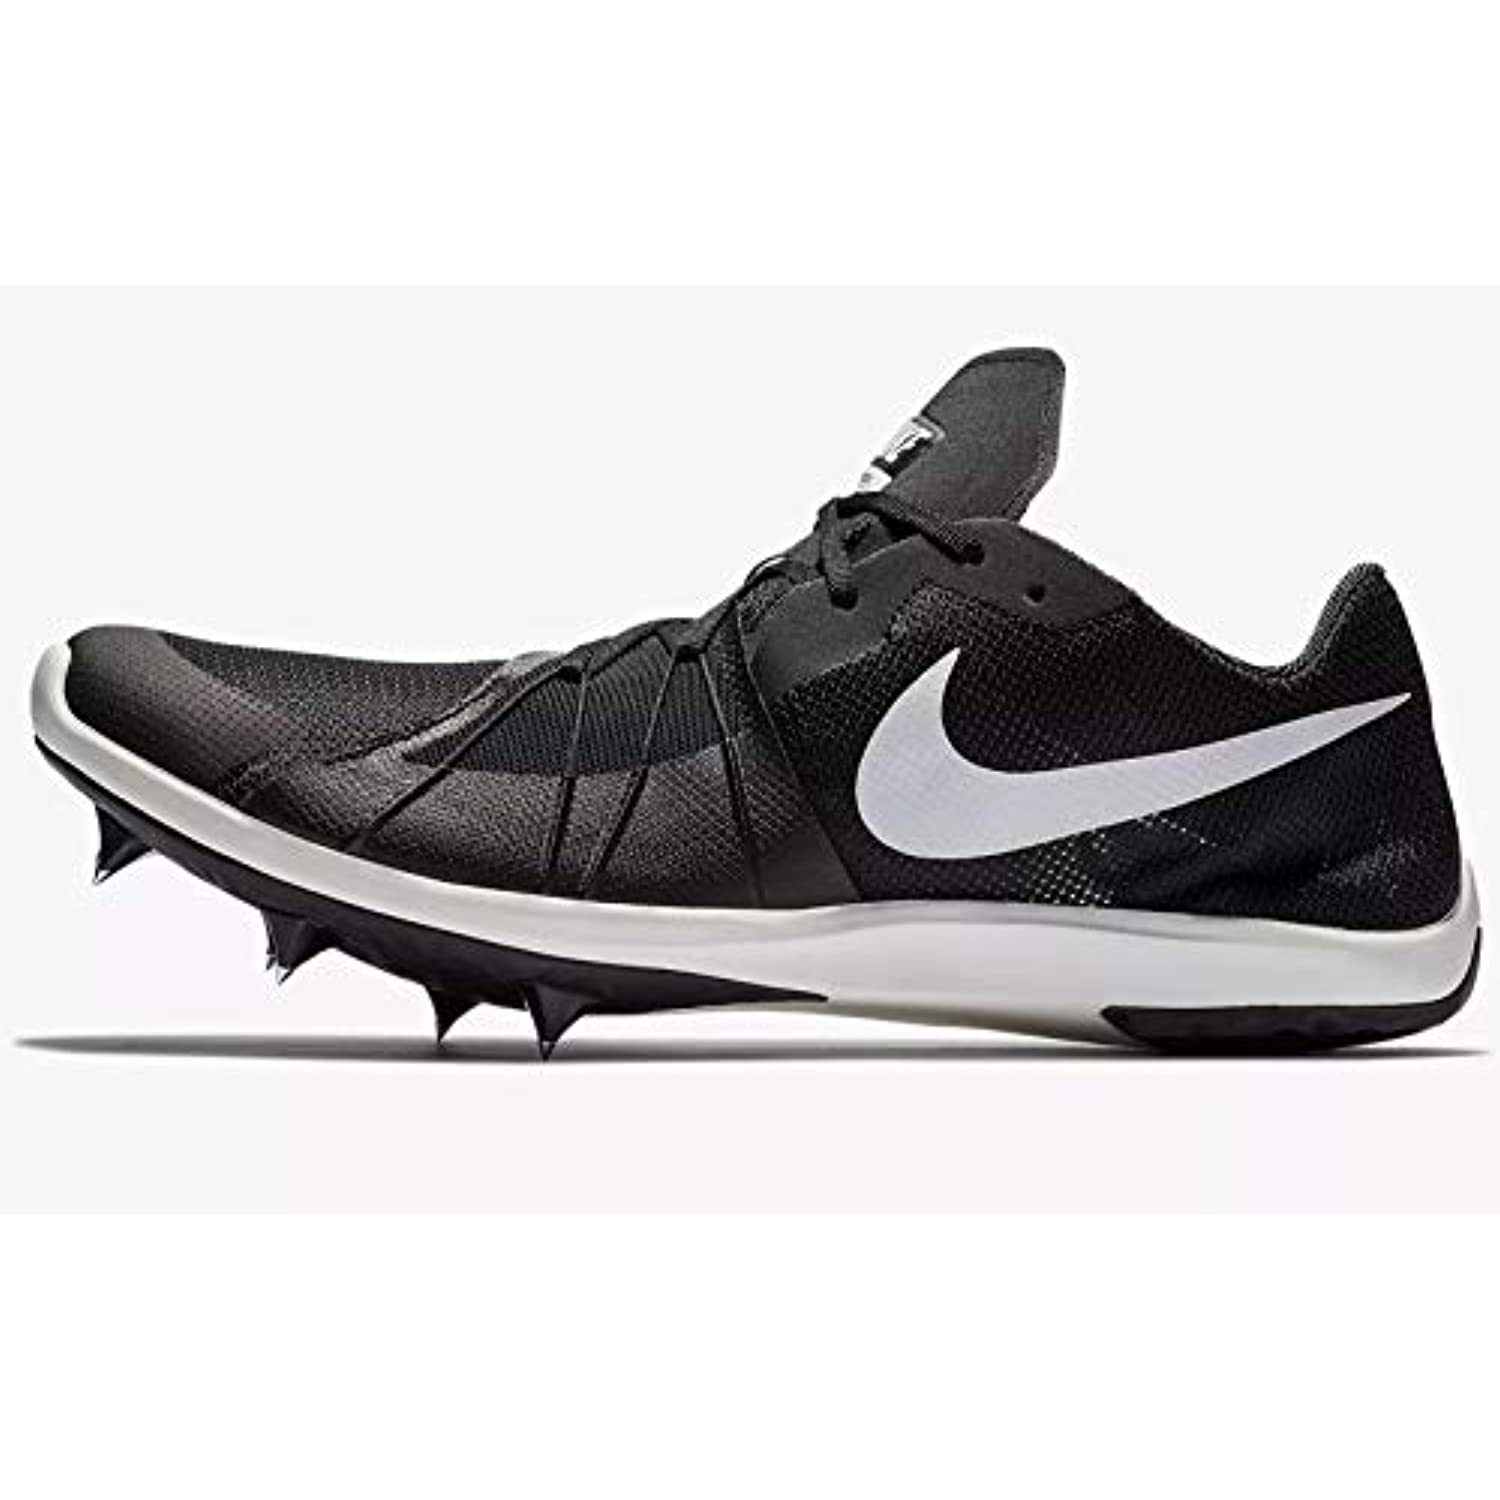 NIKE Zoom Zoom Zoom Forever XC 5, Chaussures de Fitness Mixte Adulte B00KLMO9TK - 04eb26